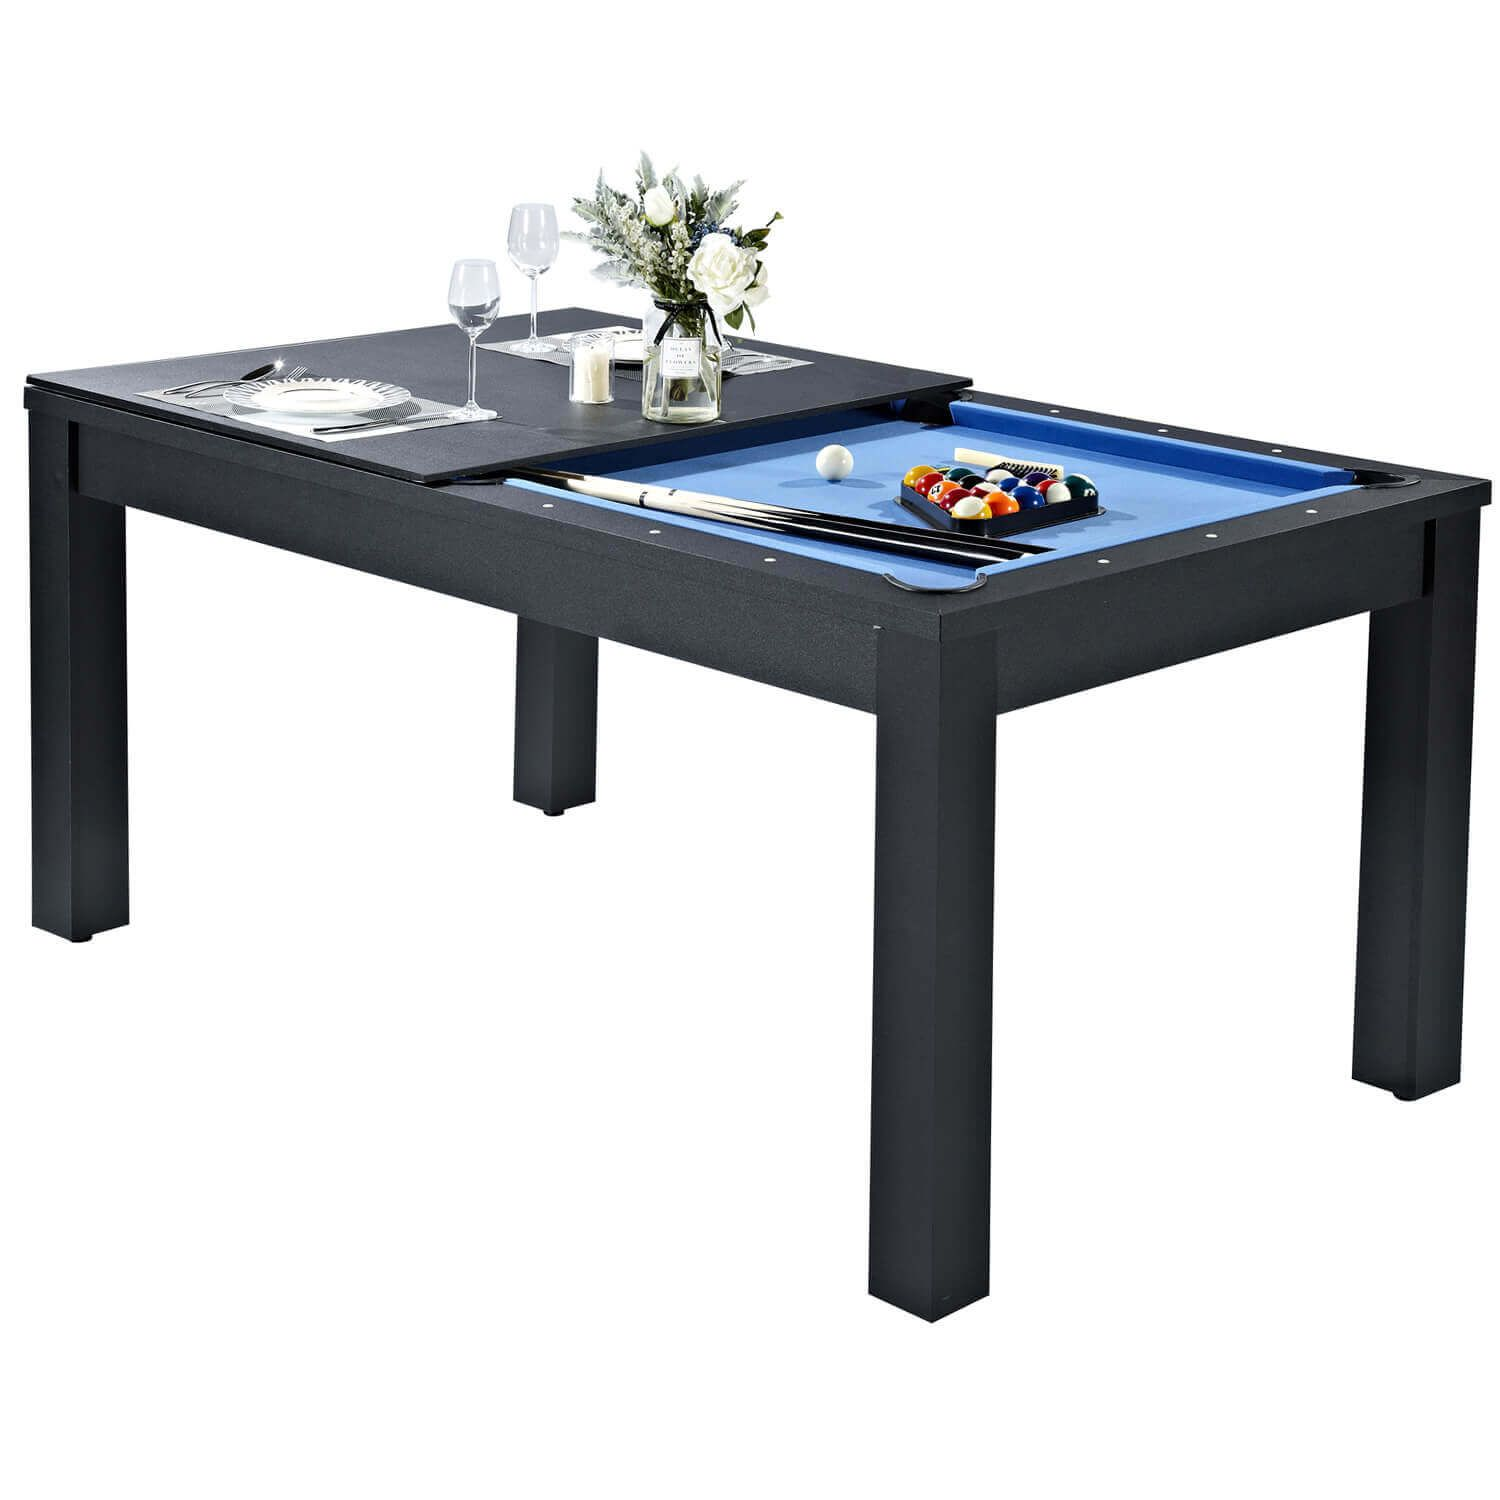 Pureline 6ft Pool Dining Table With Table Tennis Top Pool Table